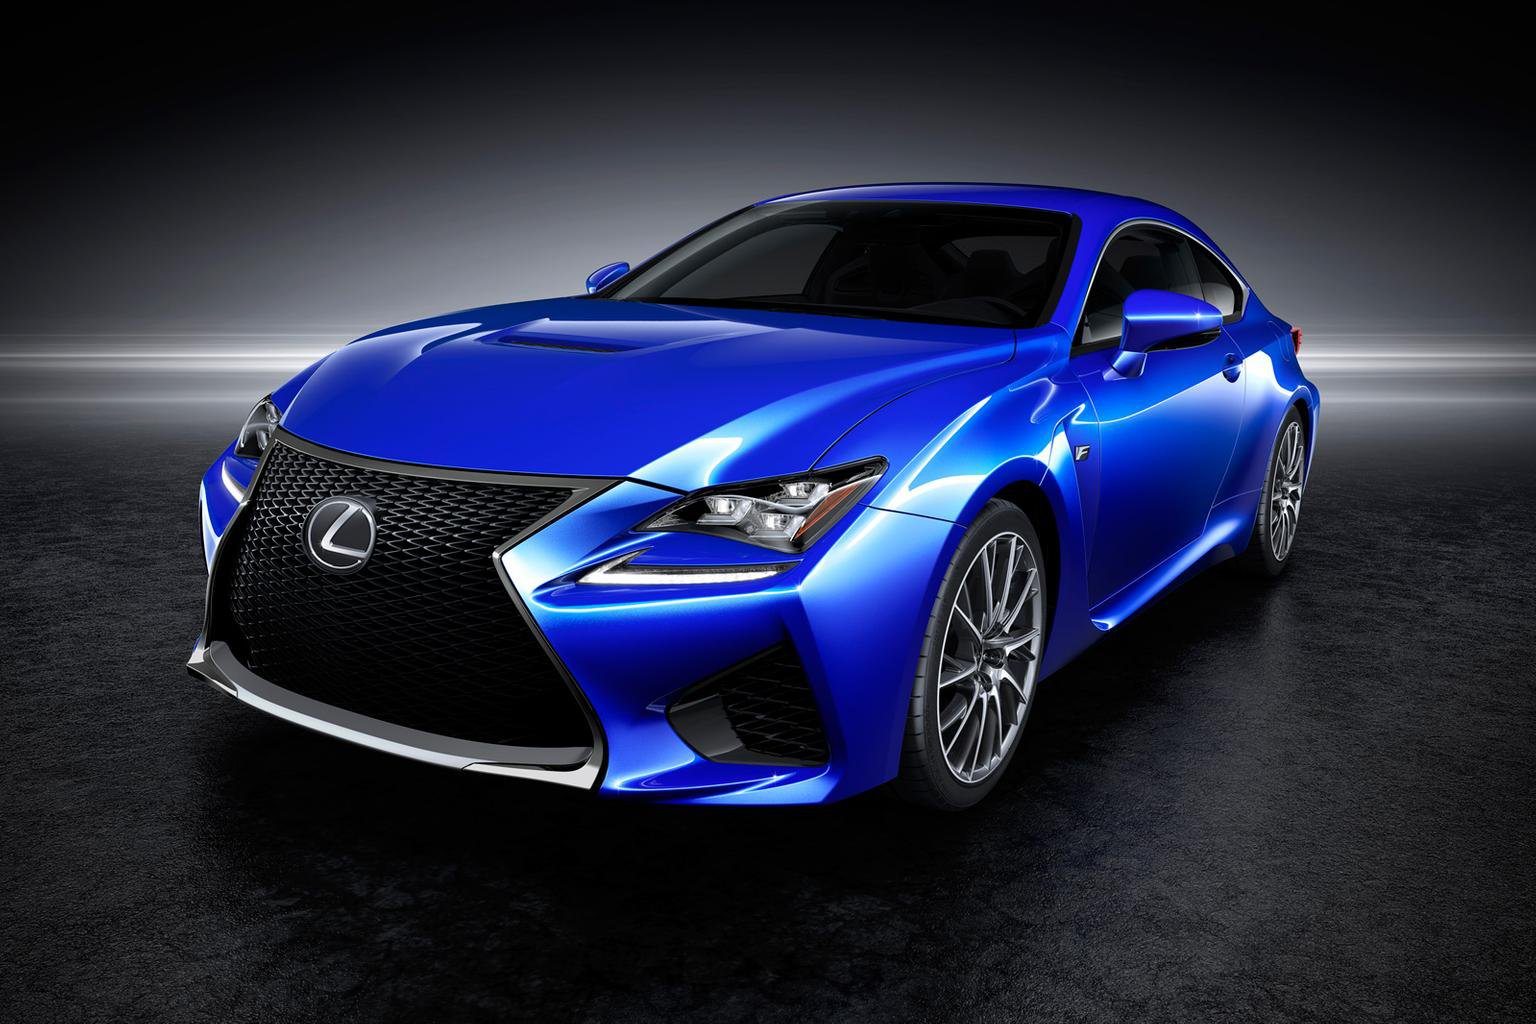 News round-up: New Lexus RC-F and Seat upgrade packs available